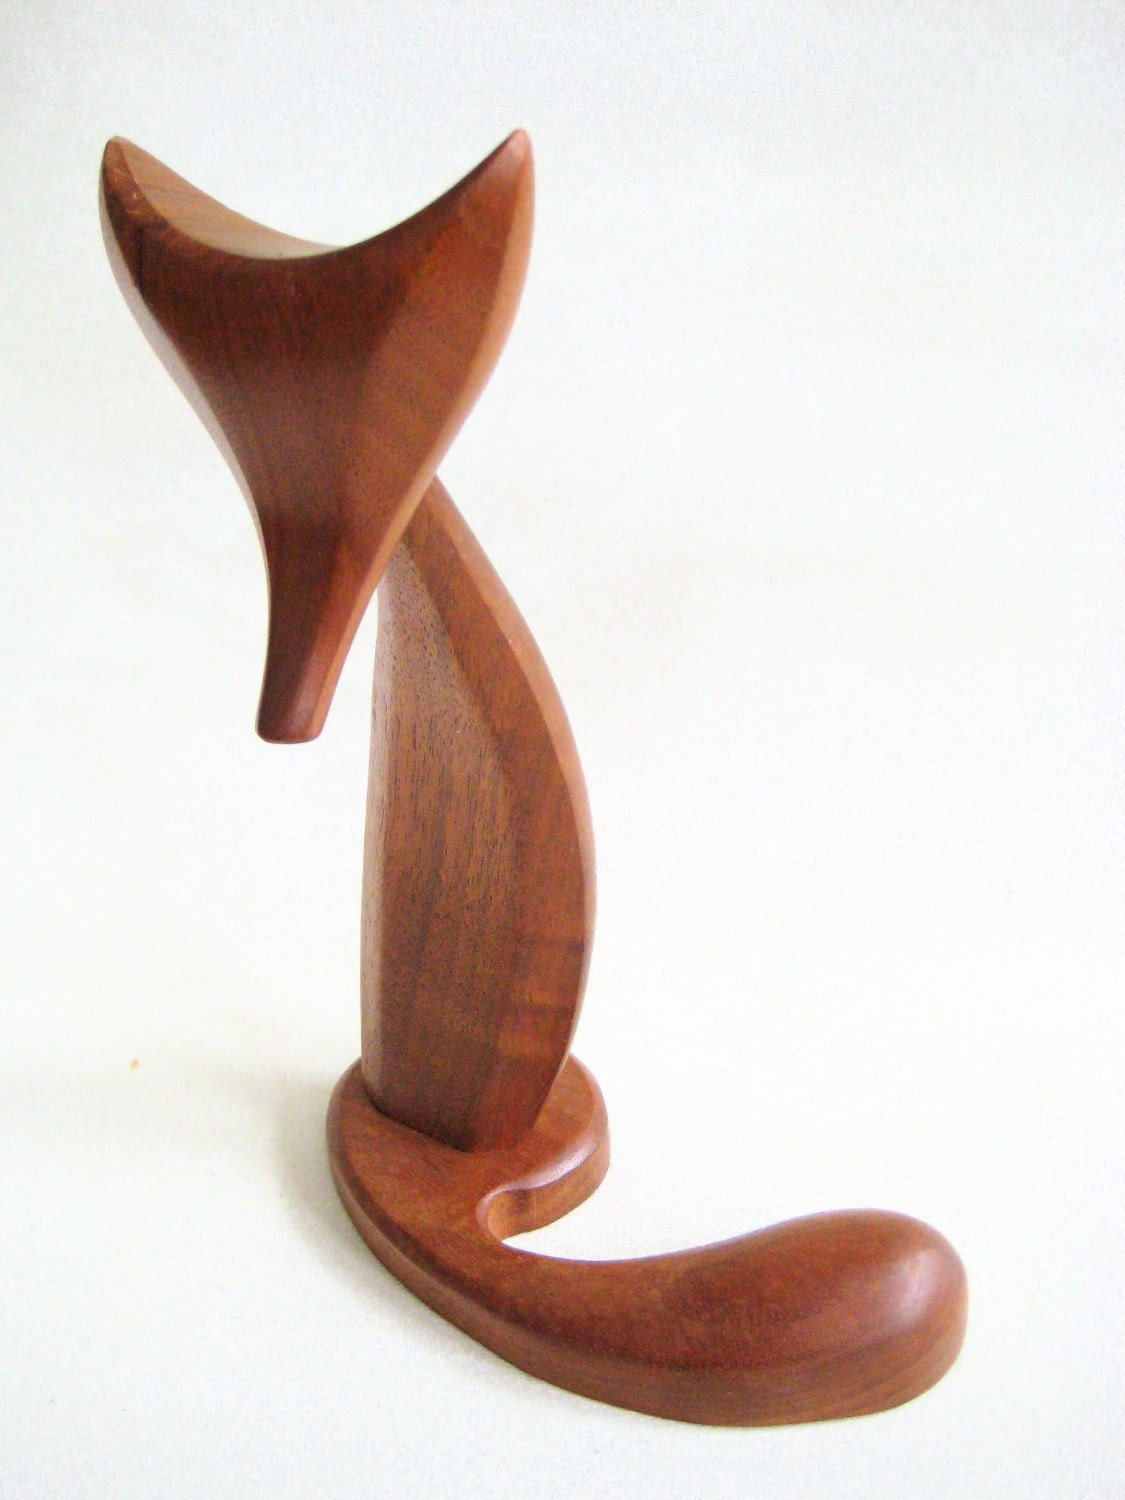 Teak Fox Sculpture